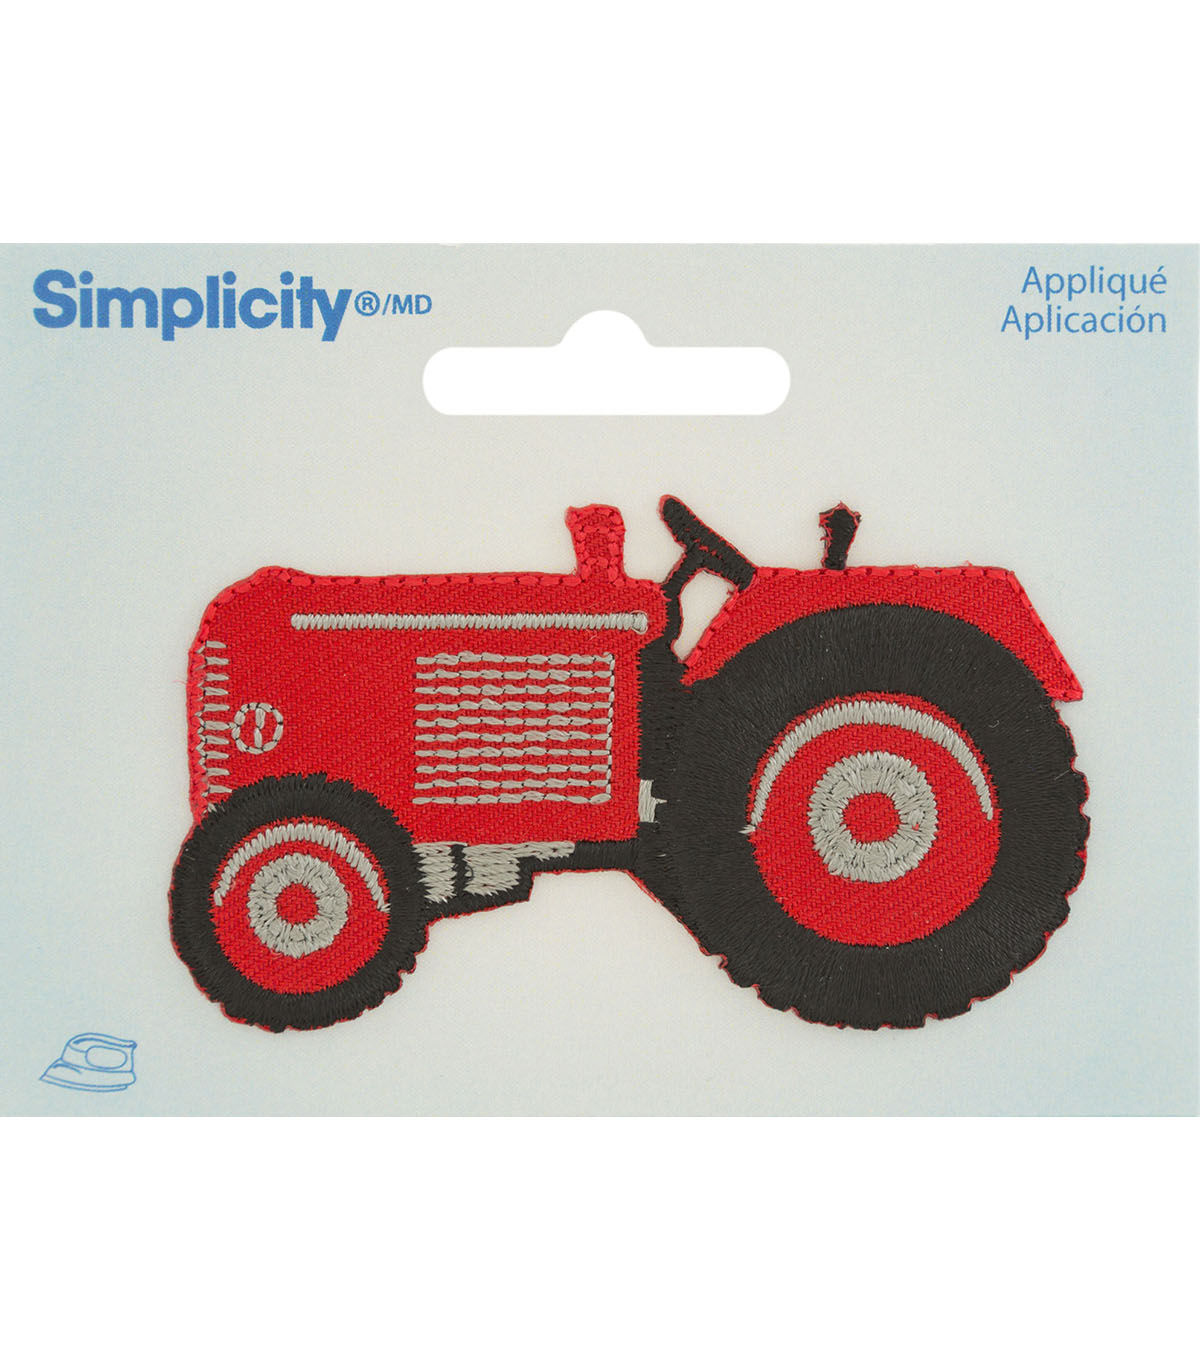 Simplicity Iron-On Applique-Red Tractor